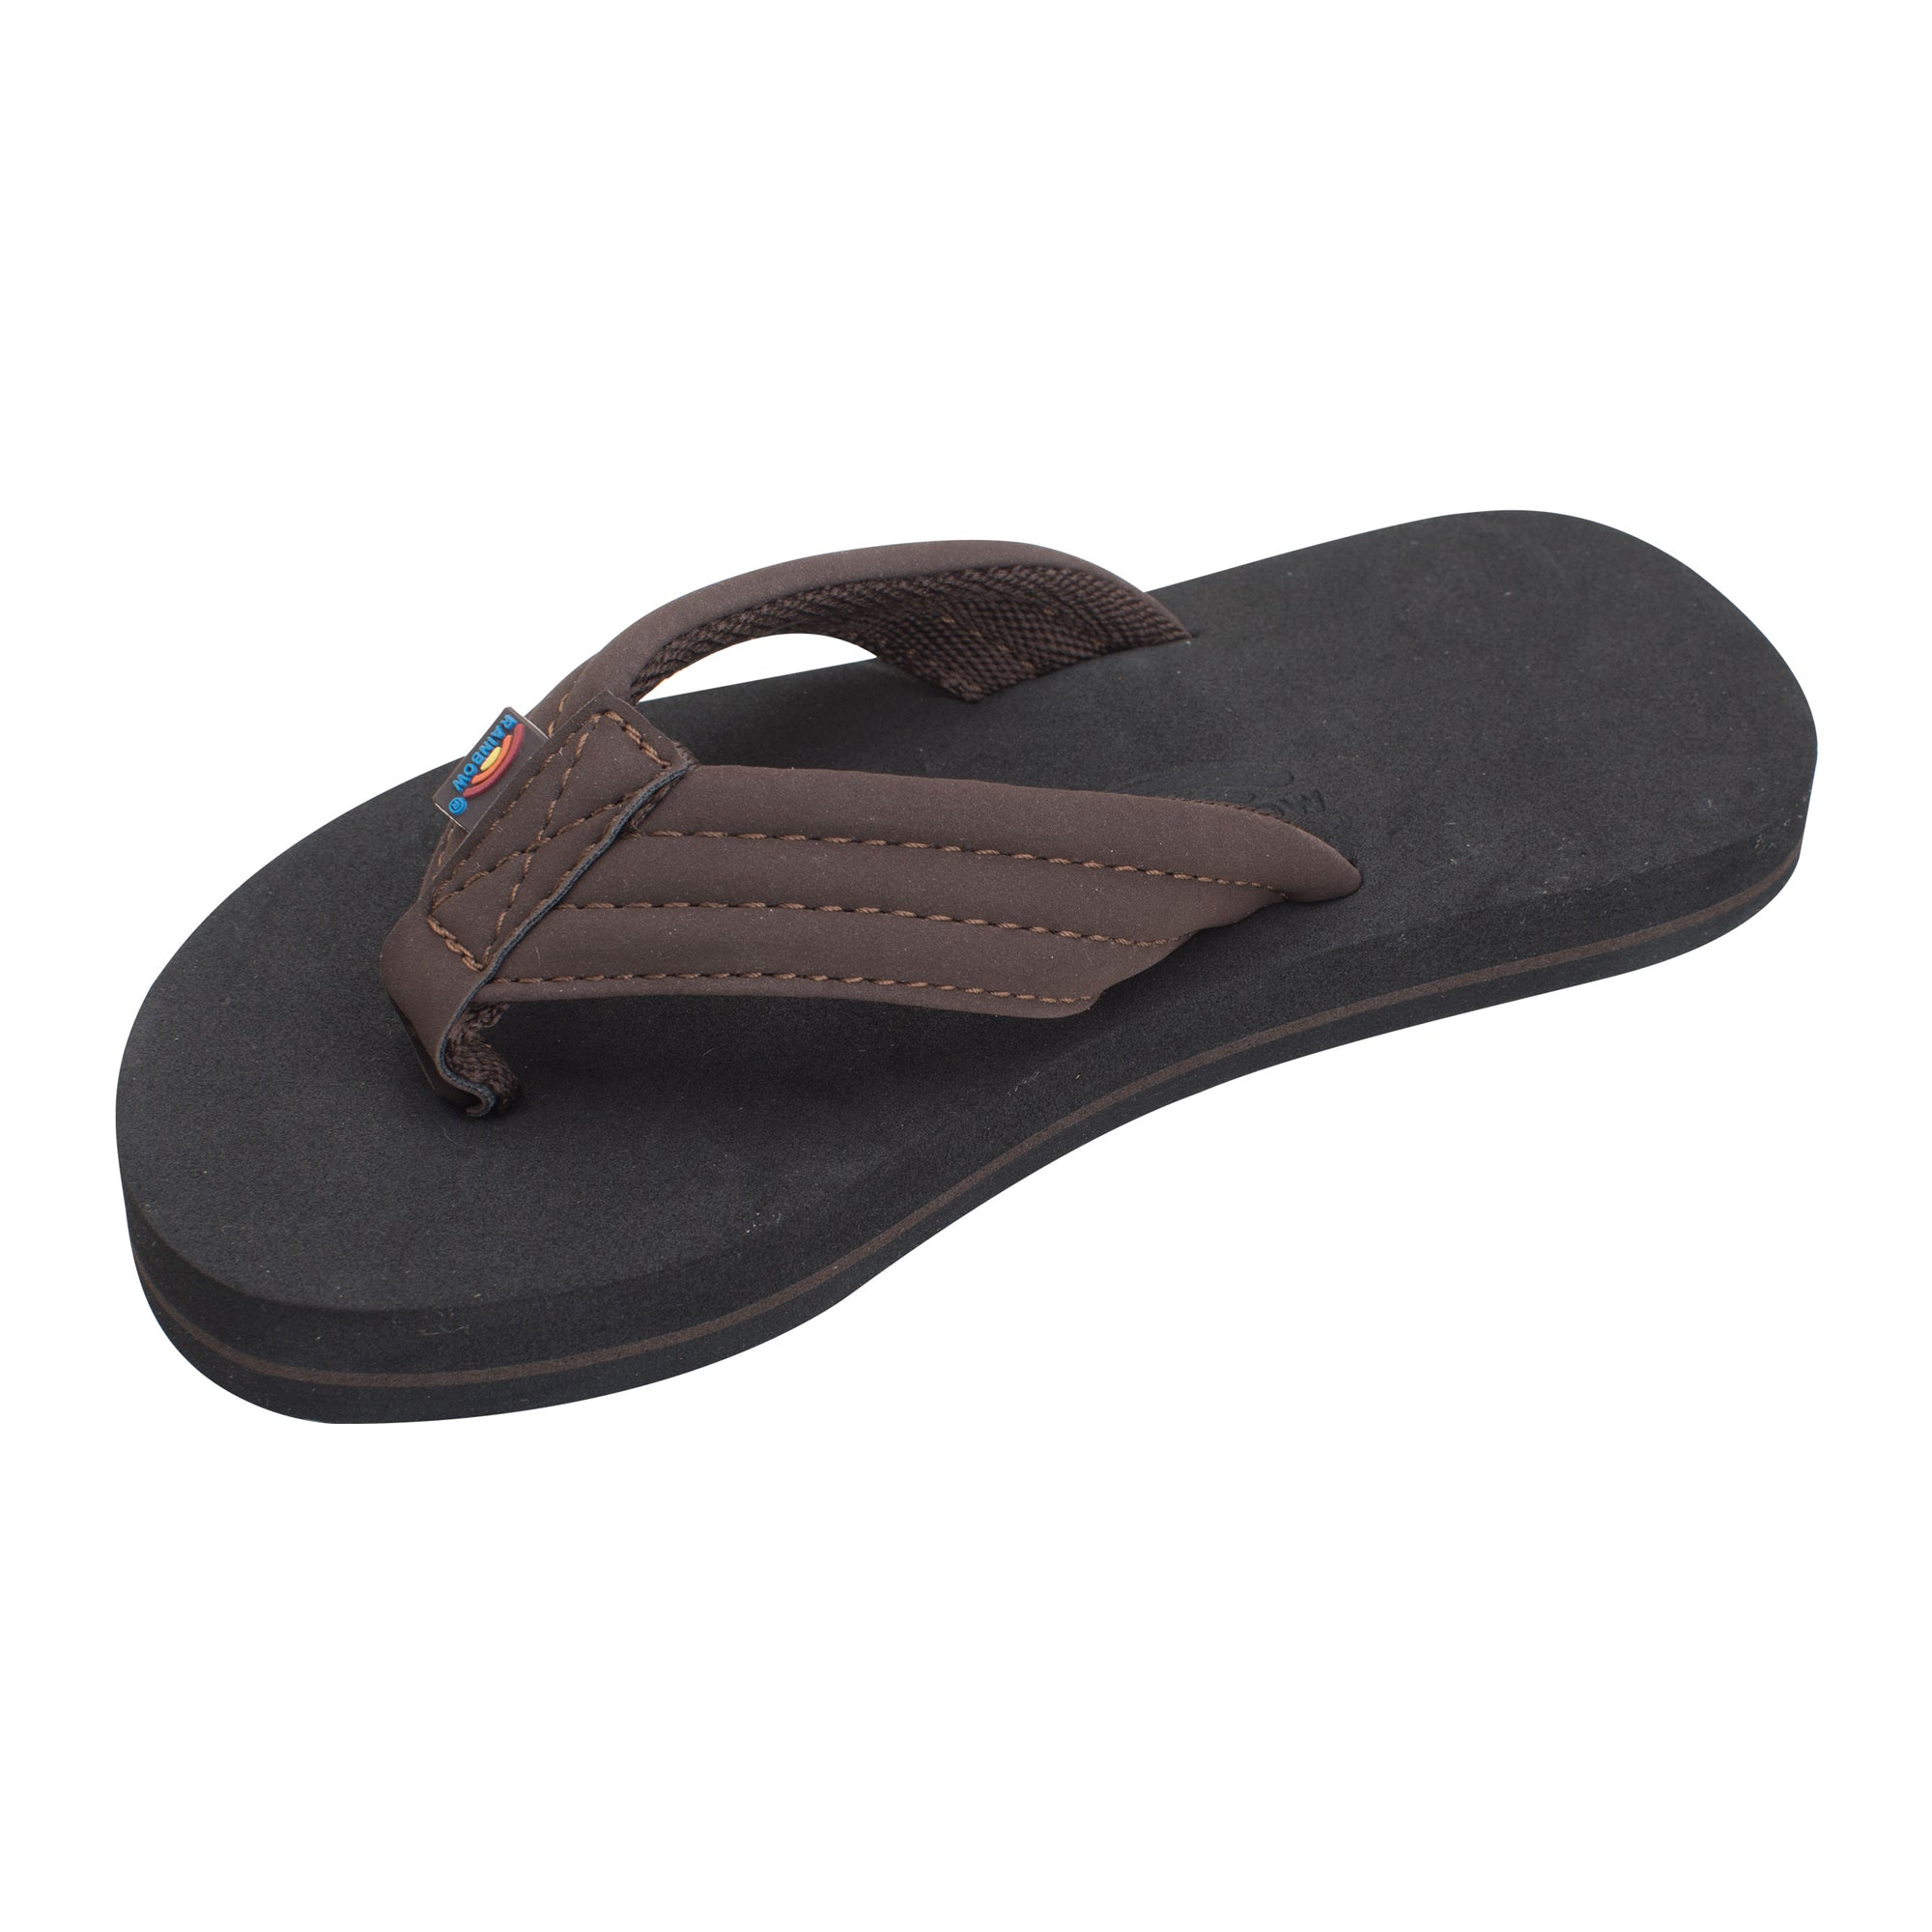 Rainbow Grombows Youth Boy's Sandals